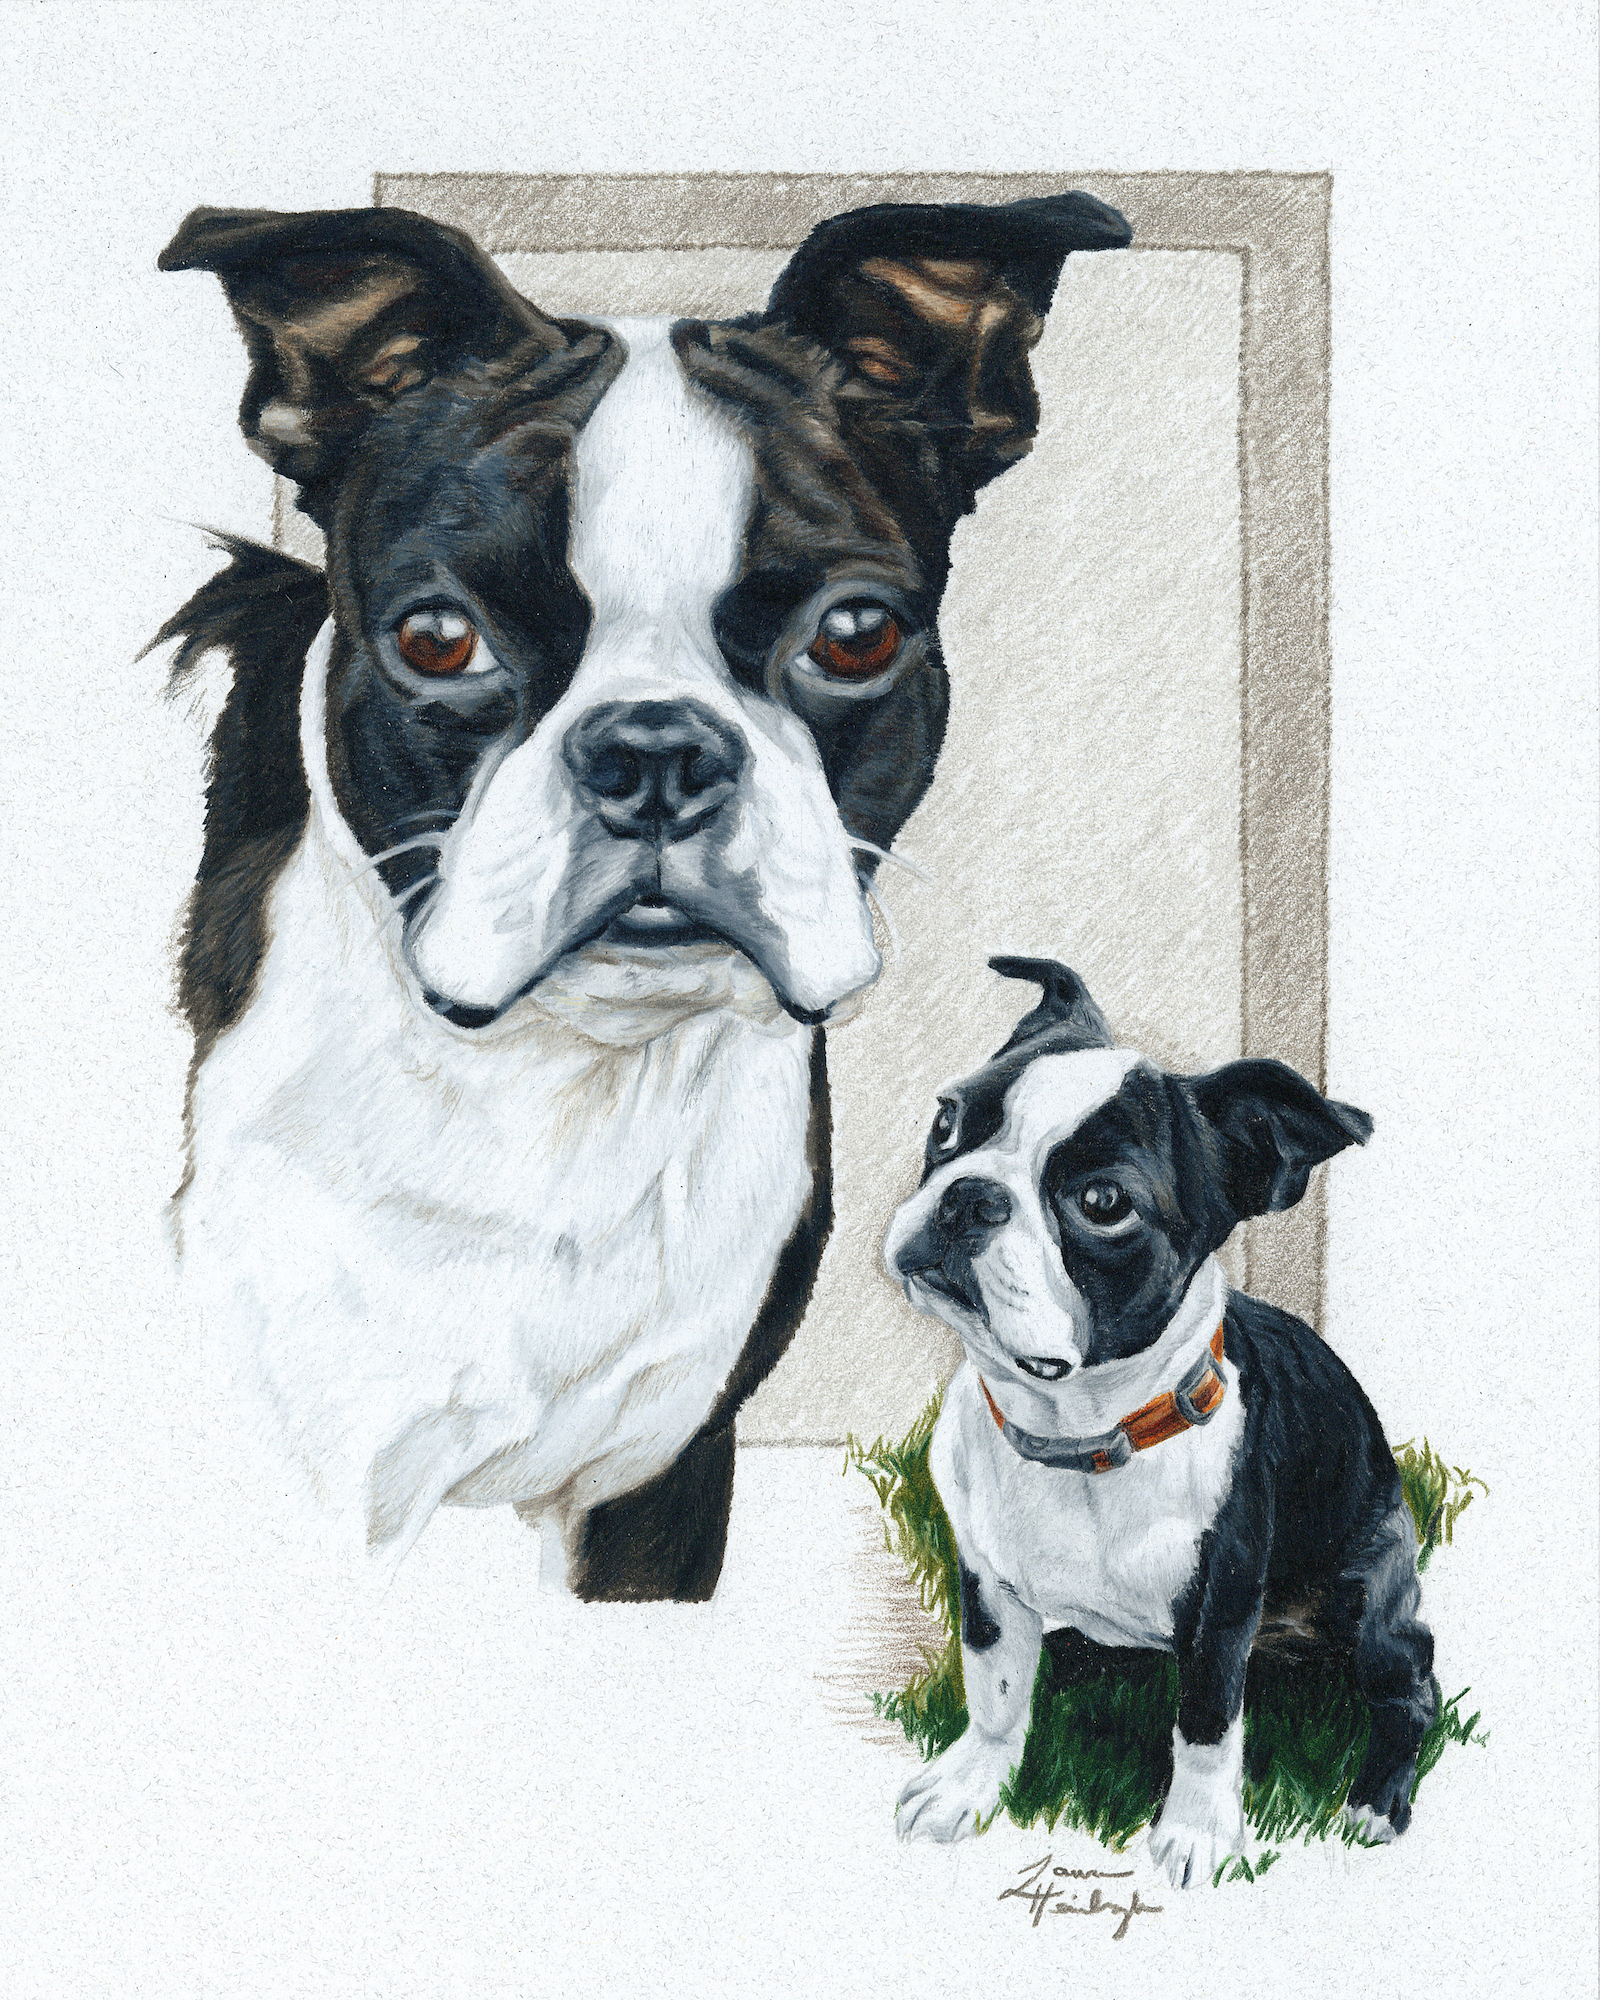 Chevy the Boston Terrier (2015)